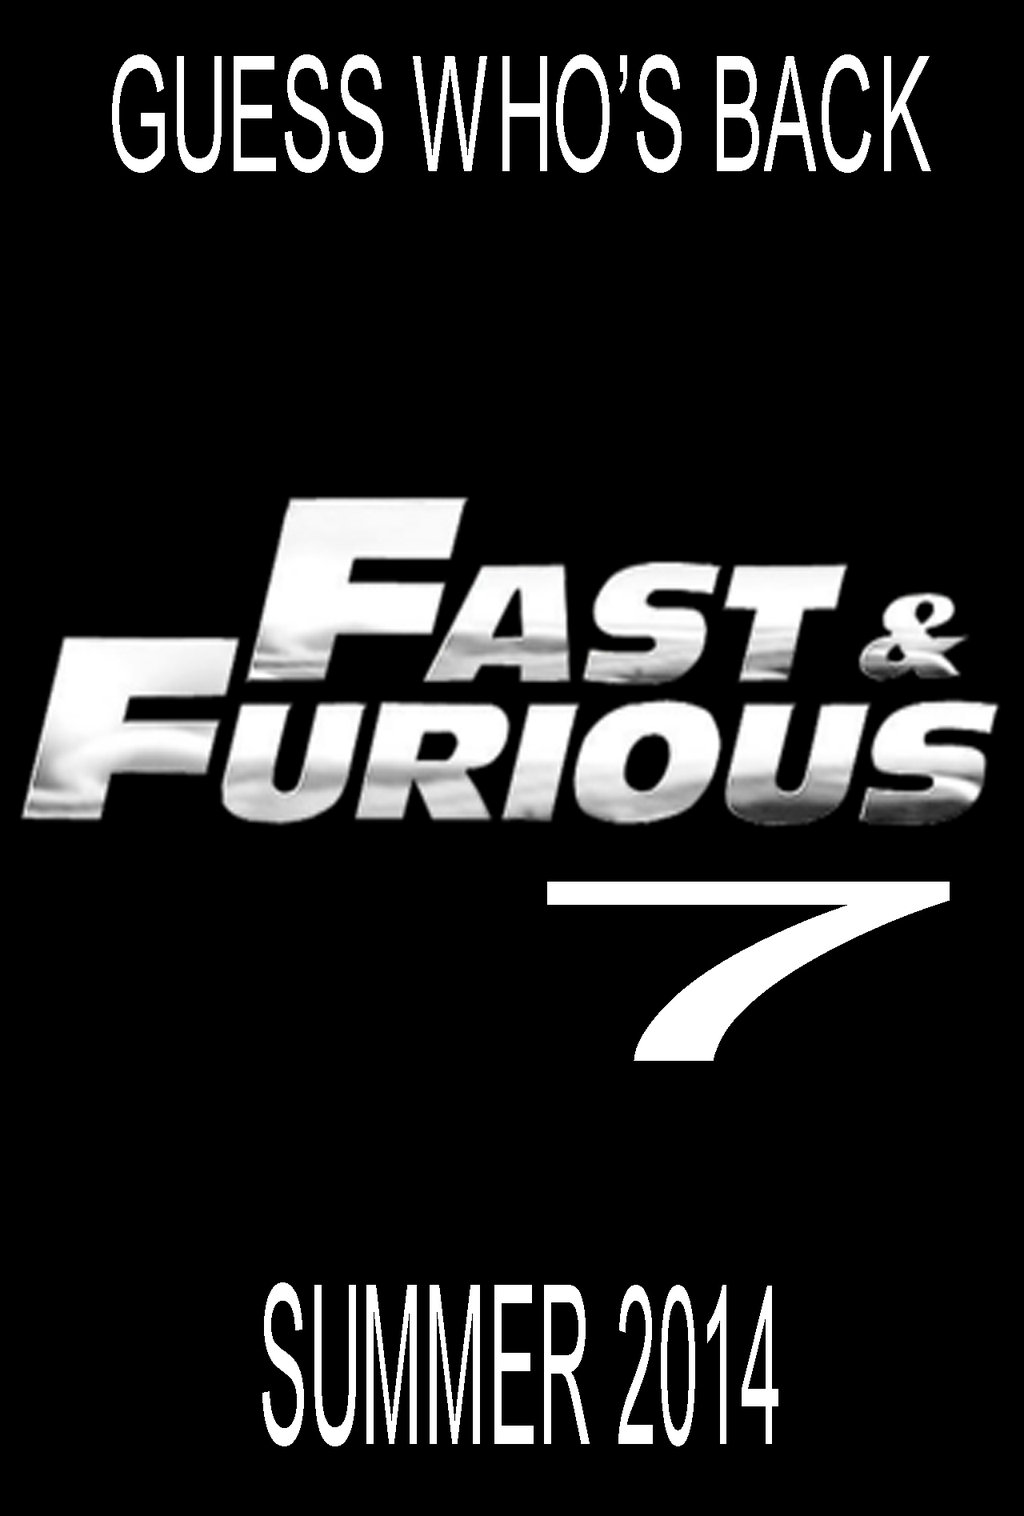 Tony Jaa To Join FAST FURIOUS 7